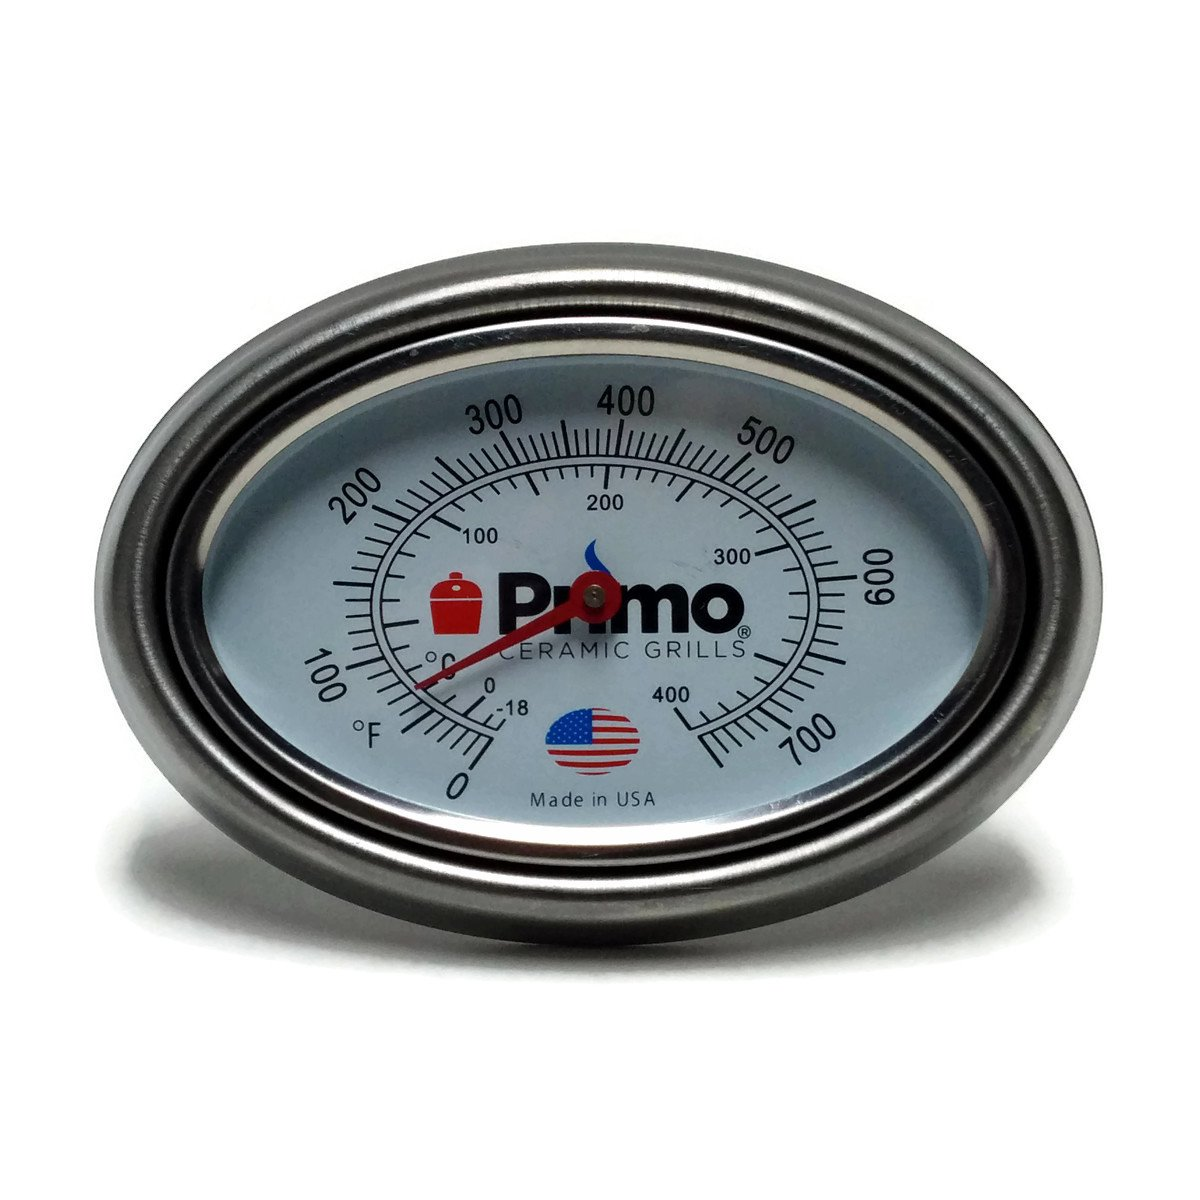 Primo Grill Thermometer and Bezel Combo for Primo Ceramic Grills - Now 200% Larger and Ability to Calibrate Primo Grills 200033